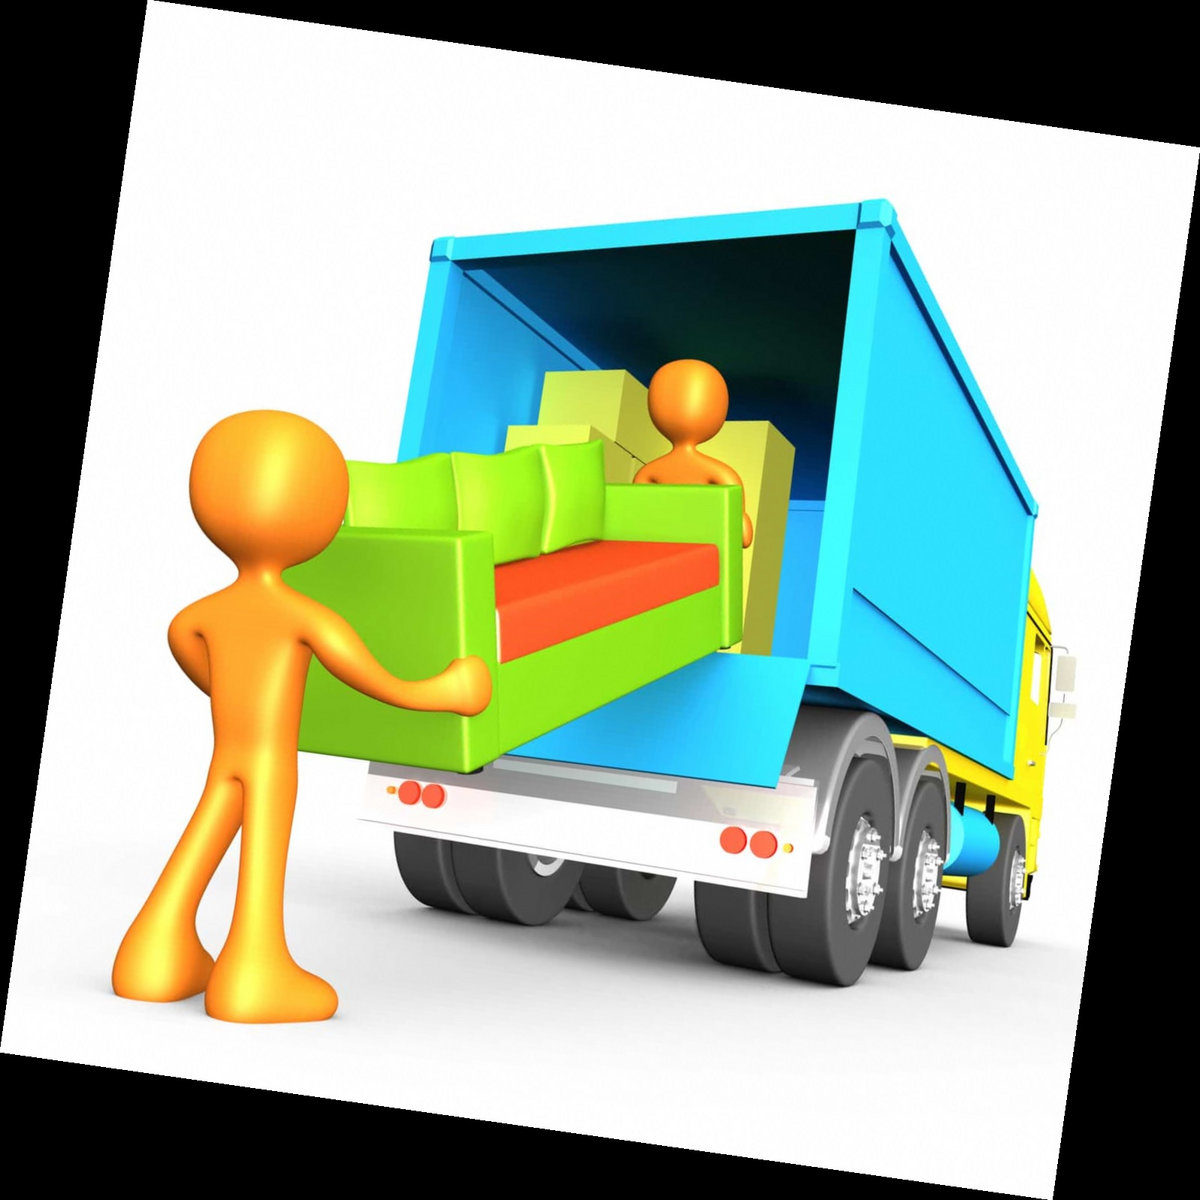 Agarwal Packers And Movers Pune Storage Sheds On District Mich 1 855 789 2734 Agarwal Packers And Movers Pune Storage Sheds Lisa Cook